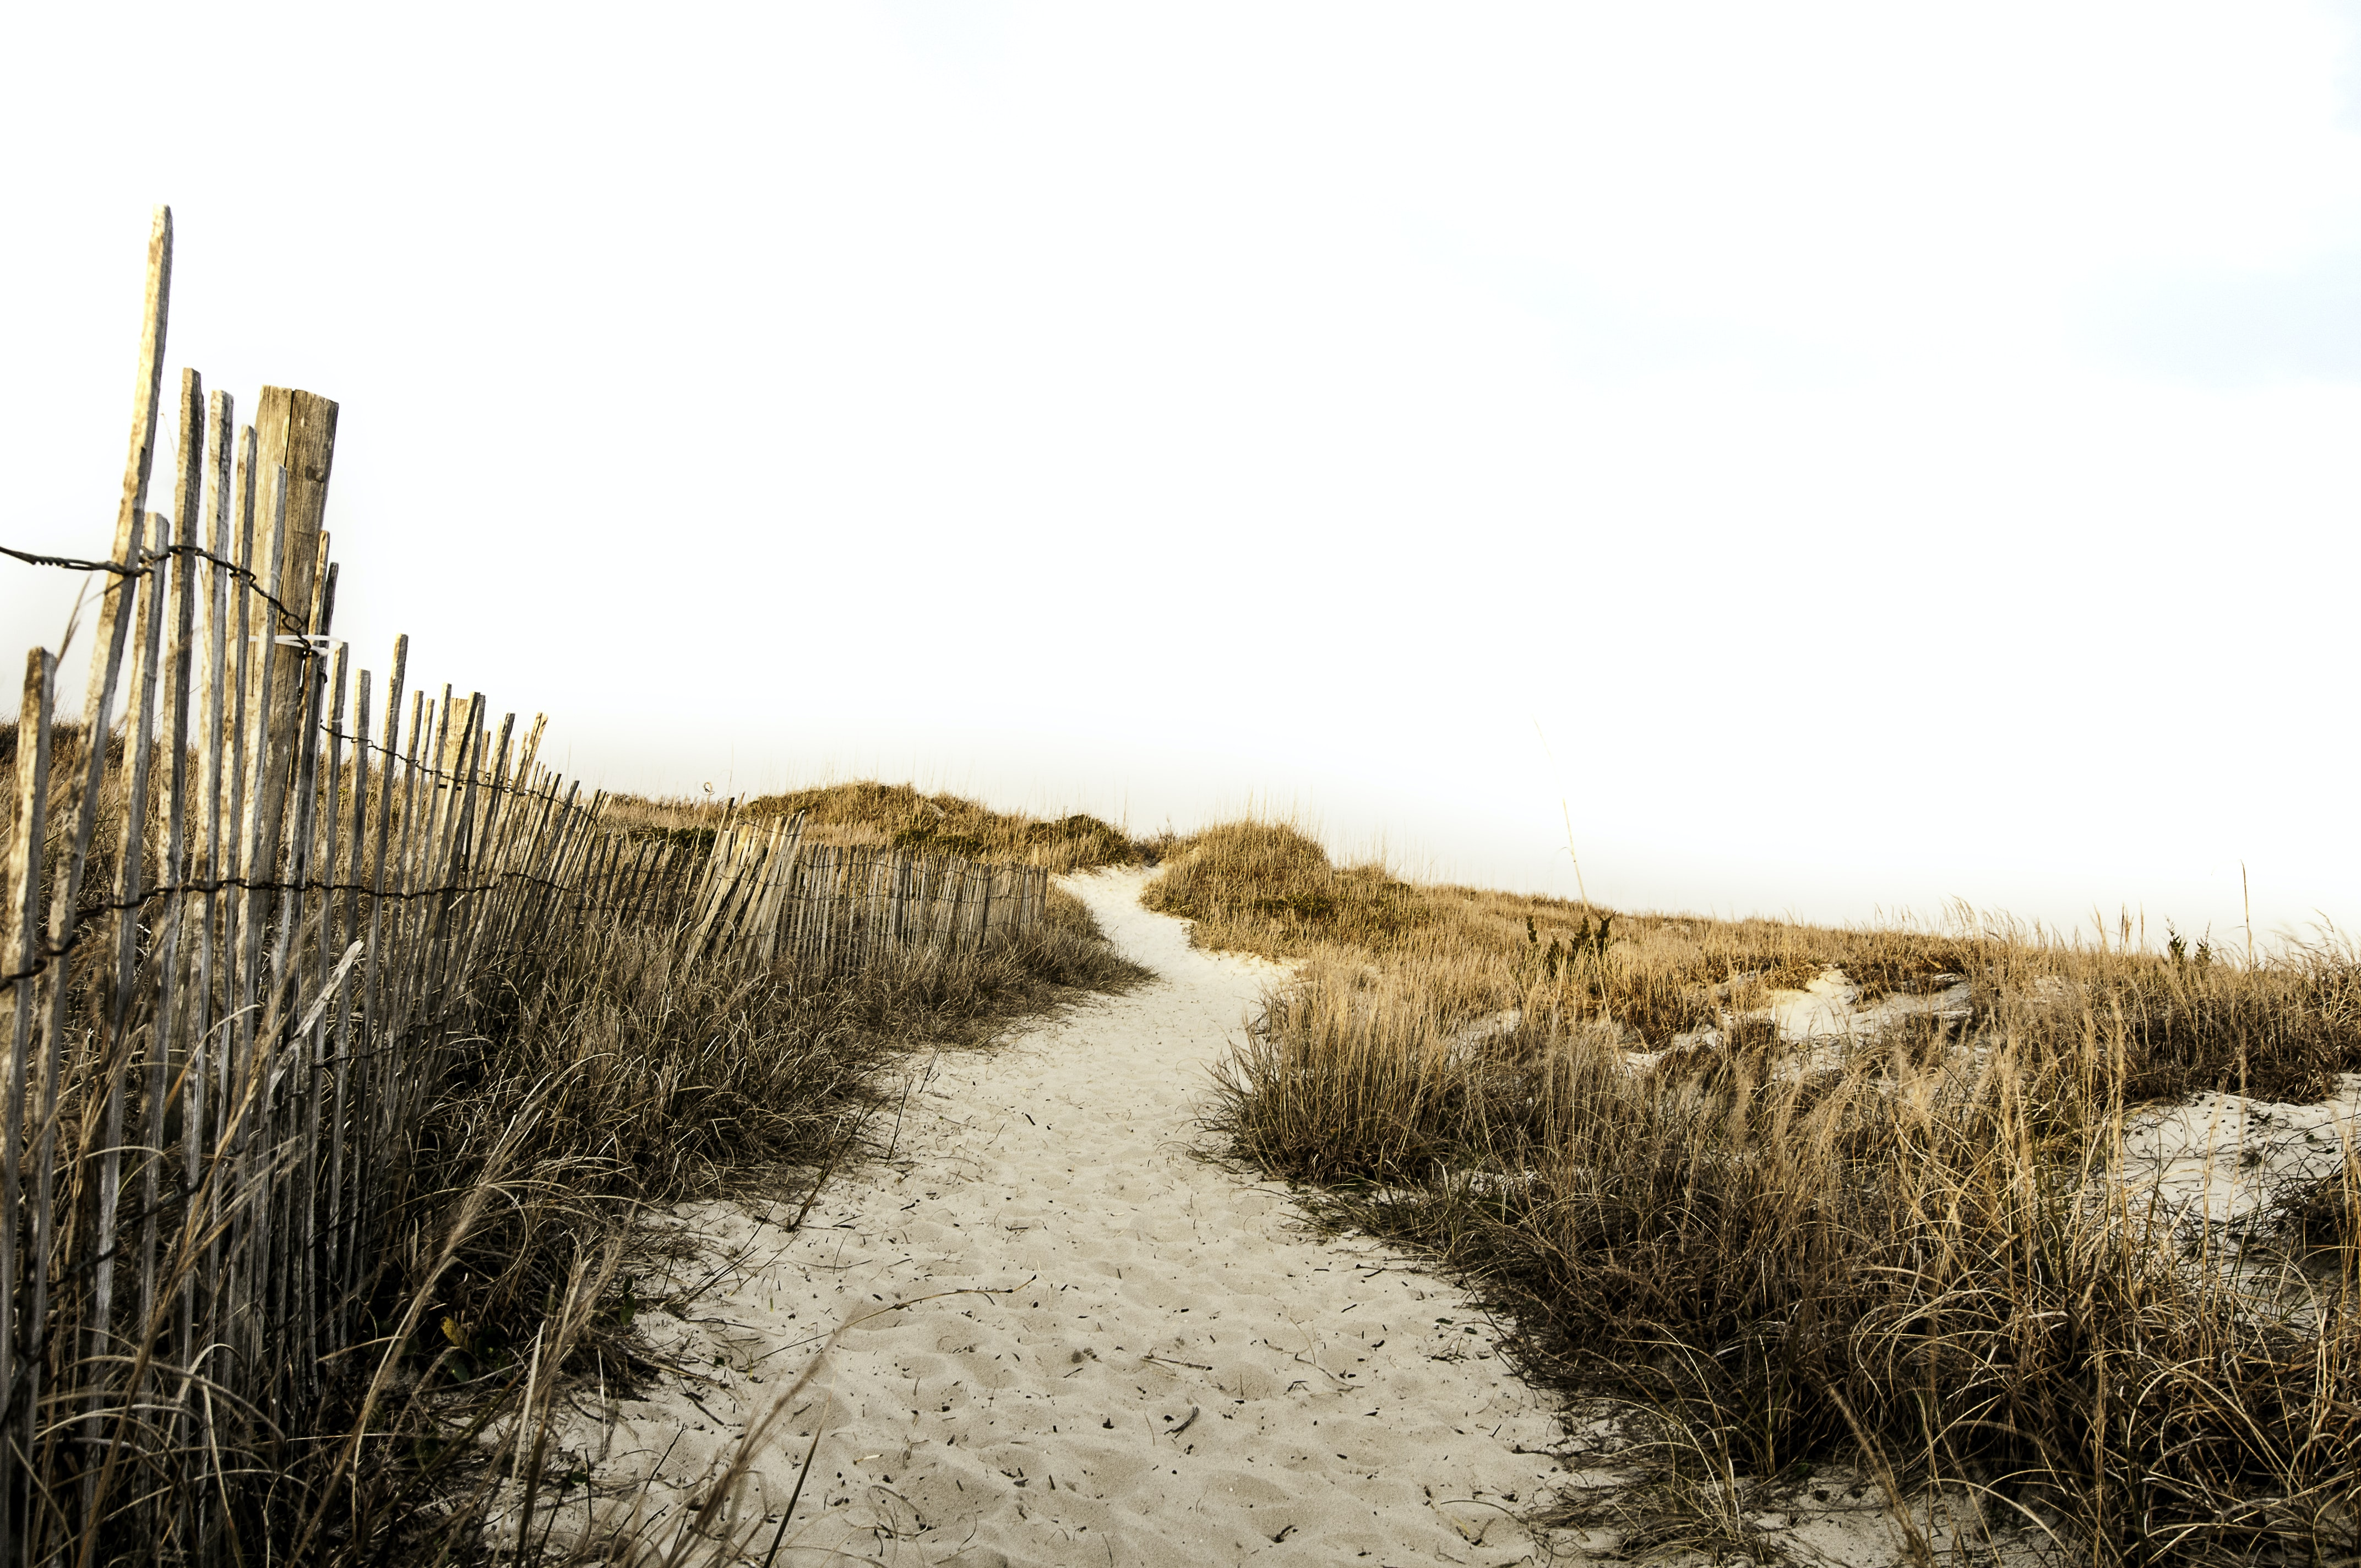 Excellent landscape featuring sand dune and dry grass at Atlantic beach